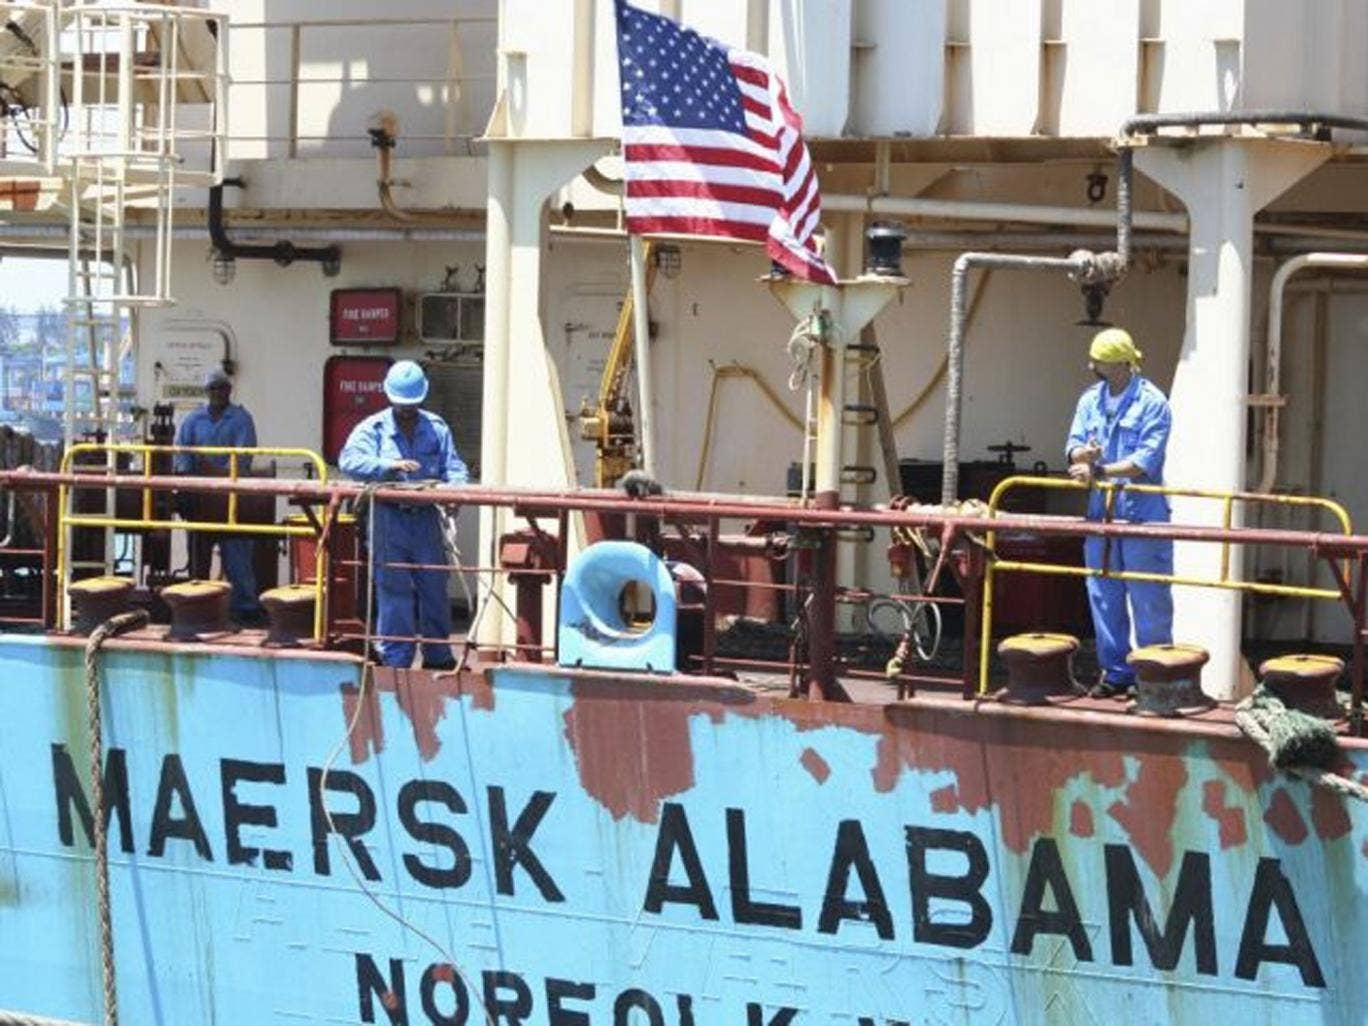 FILE - In this Nov. 22, 2009 file photo, crew members work aboard the U.S.-flagged Maersk Alabama after the ship docked in the harbour of Mombasa, in Kenya. Police in the Indian Ocean island nation of Seychelles said Wednesday, Feb. 19, 2014 that two Amer